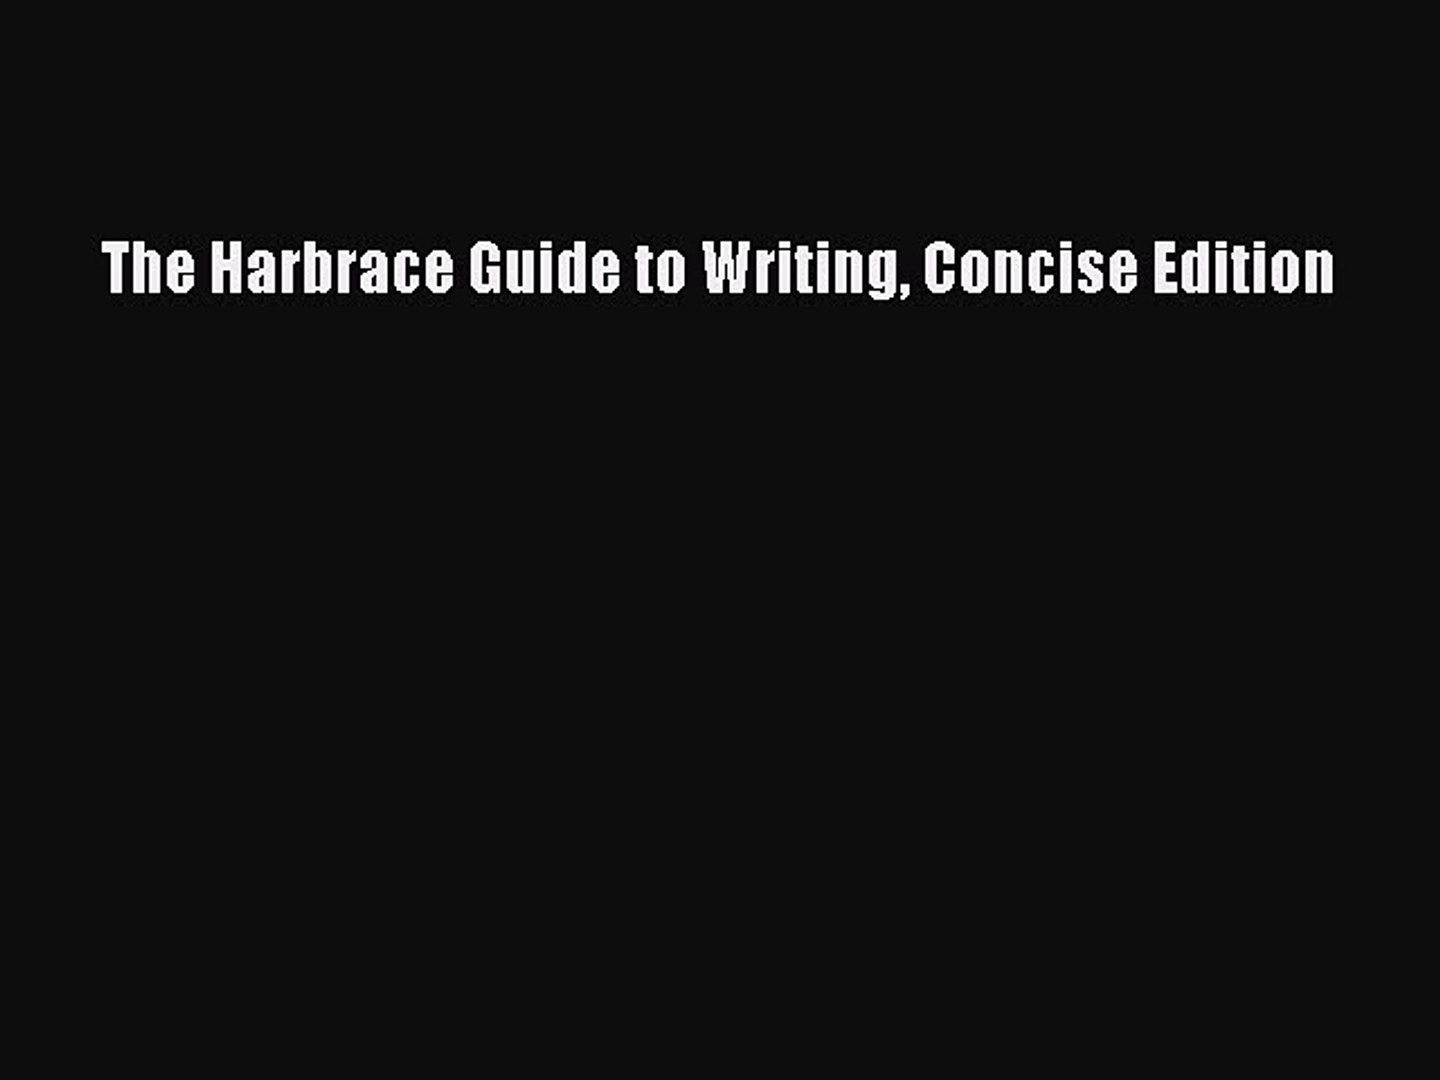 The harbrace guide to writing concise edition c. Glenn.